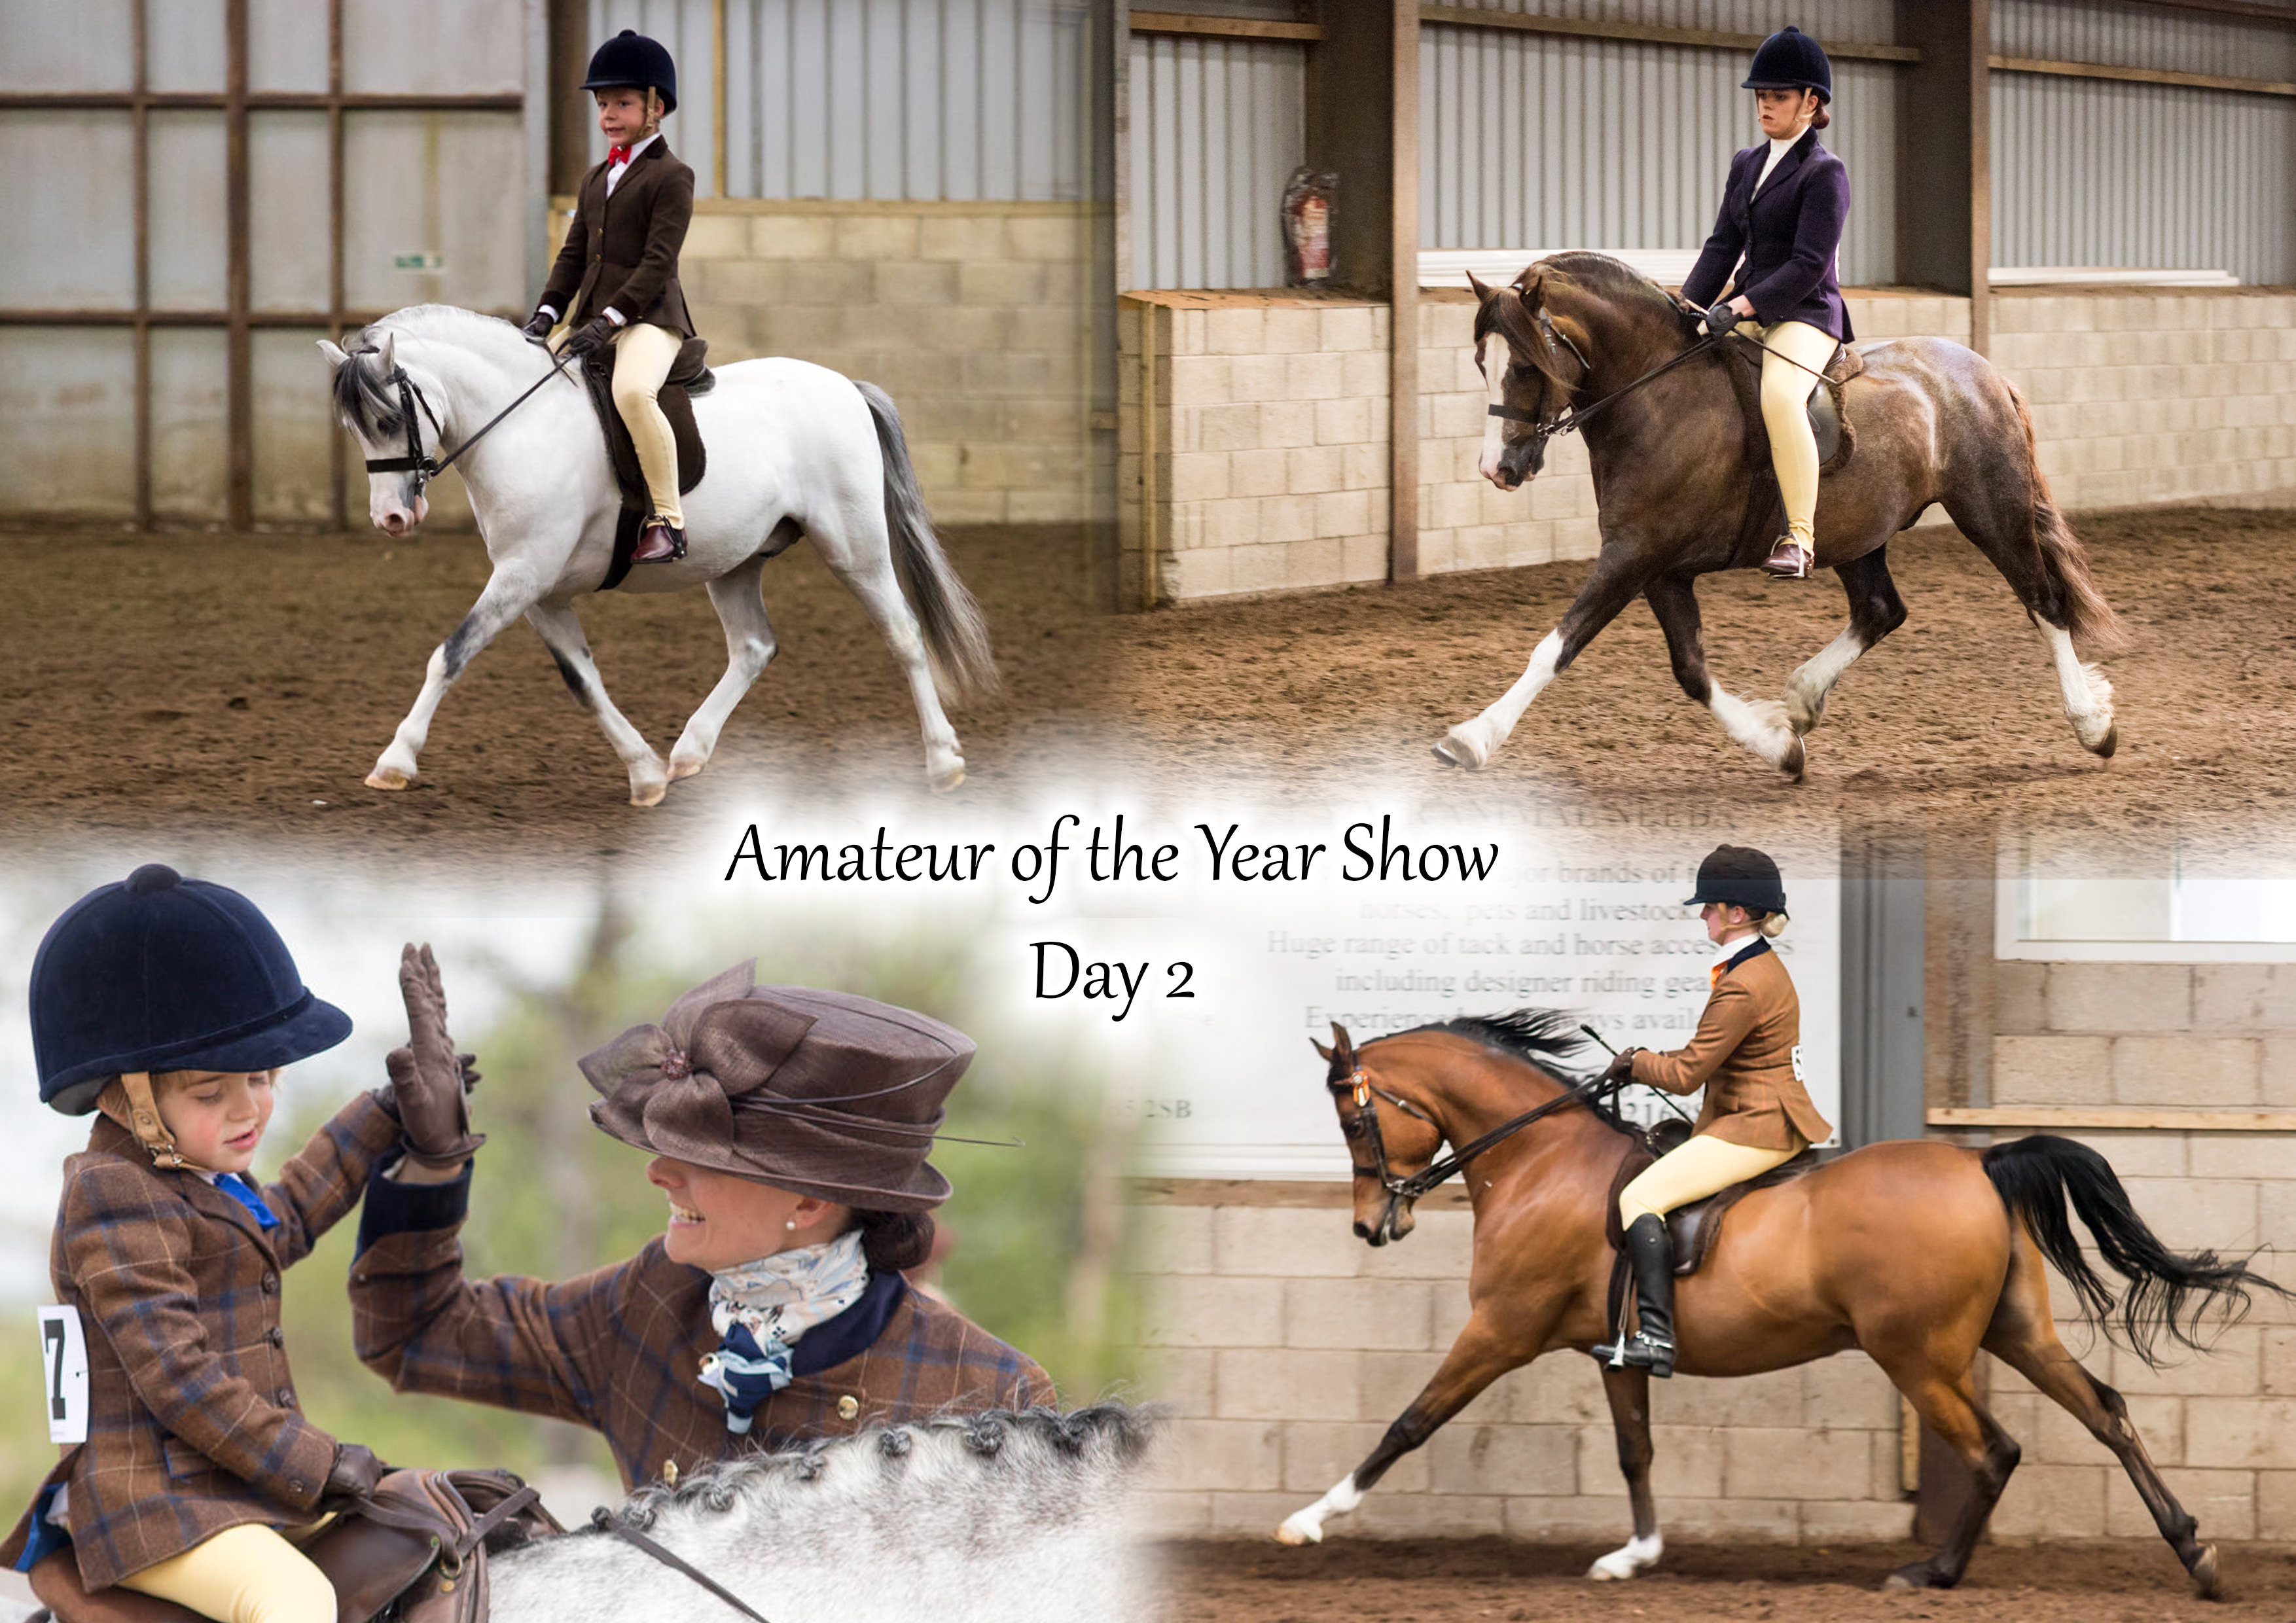 Amateur of the Year Show- Day 2